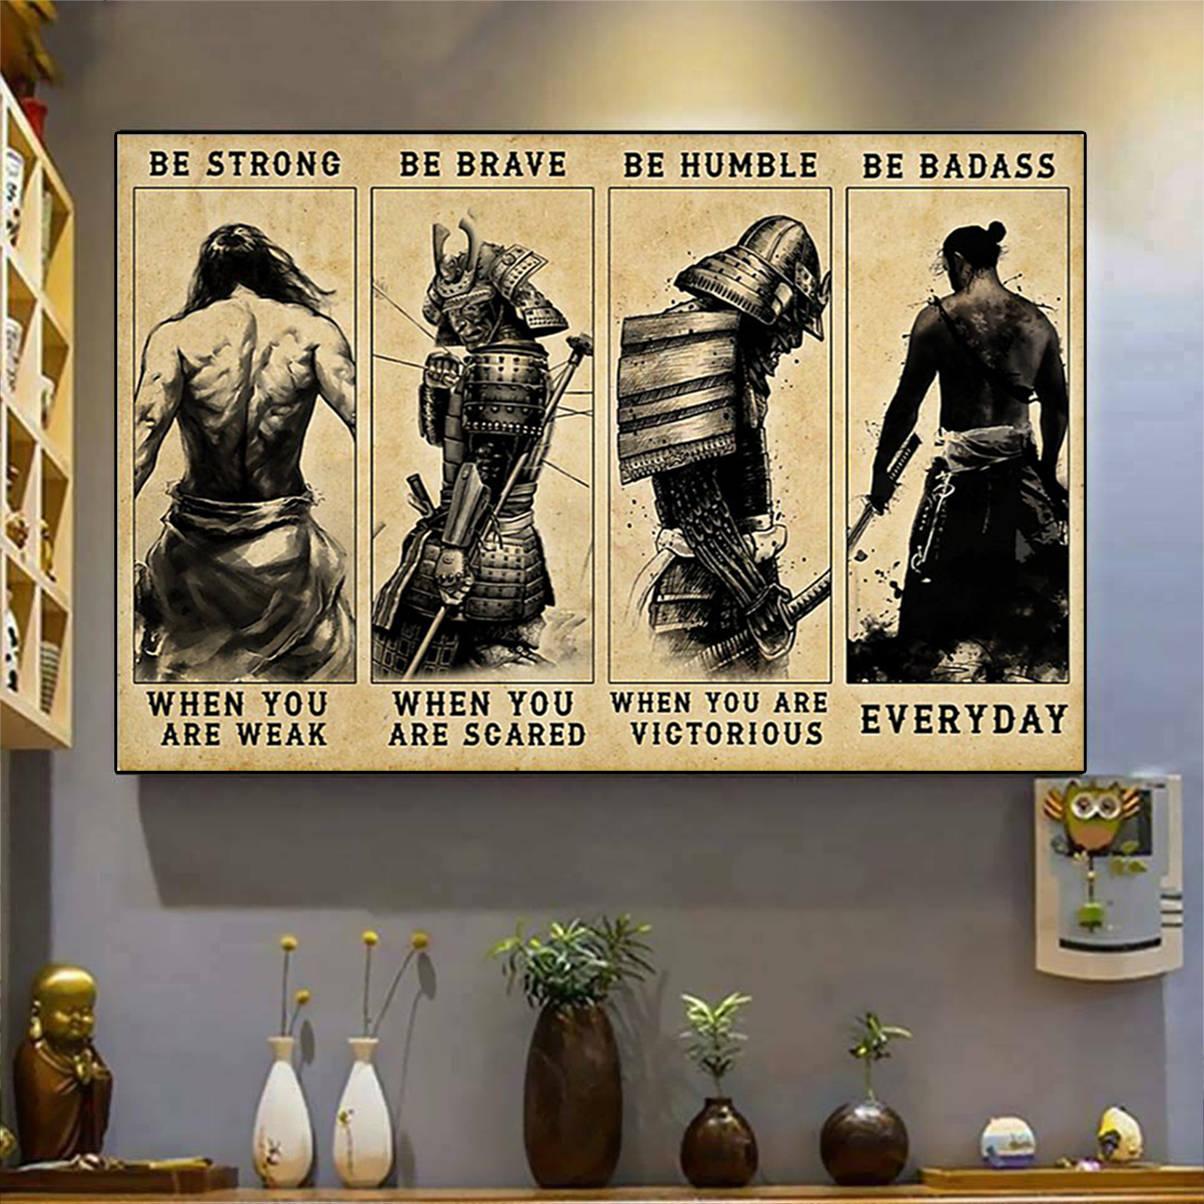 Samurai be strong be brave be humble be badass poster A1